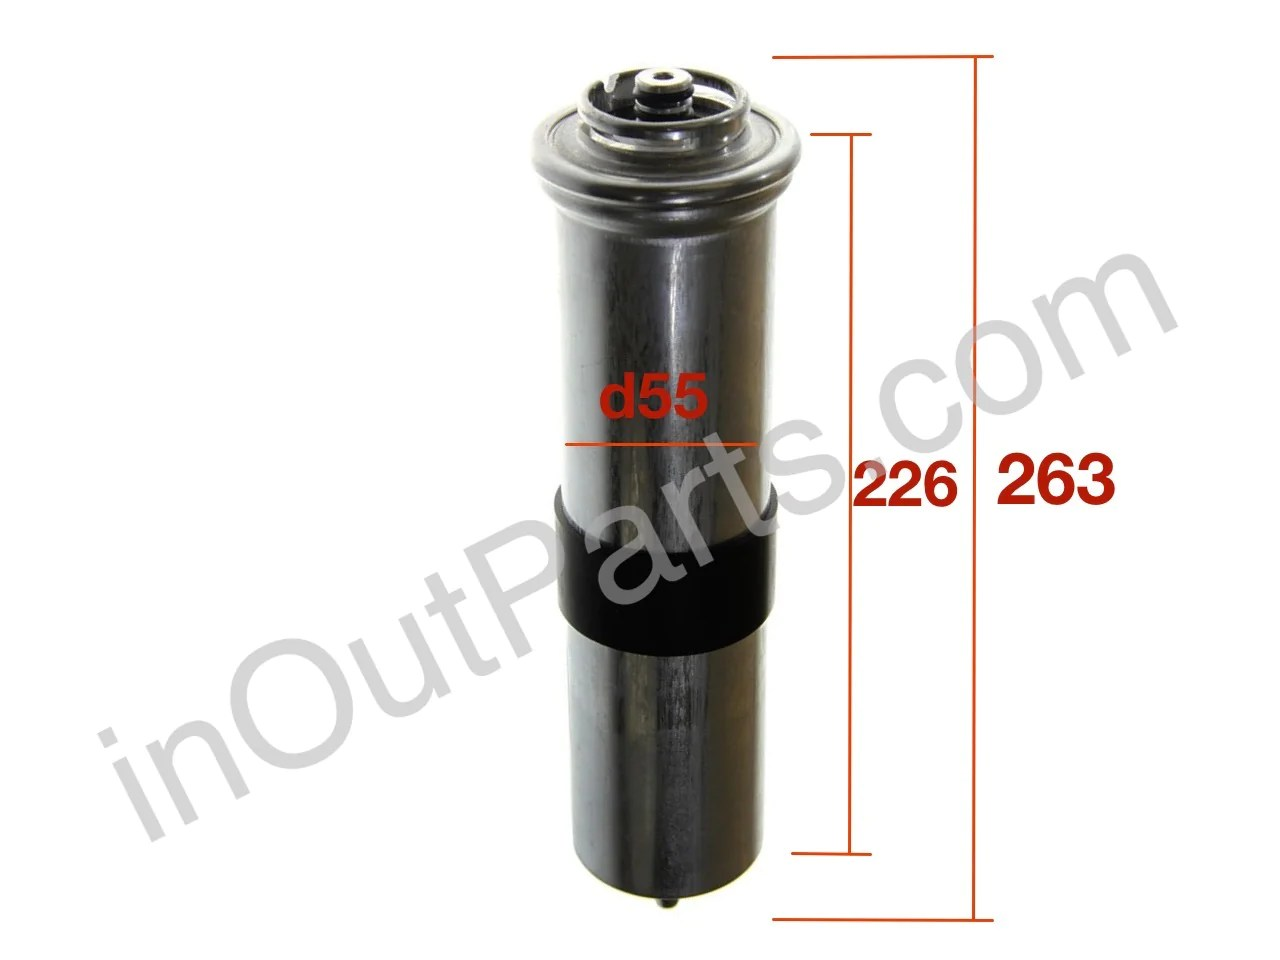 small resolution of fuel filter fits bmw 3 series e90 2005 2013 x1 e84 2009 2016 x inout parts